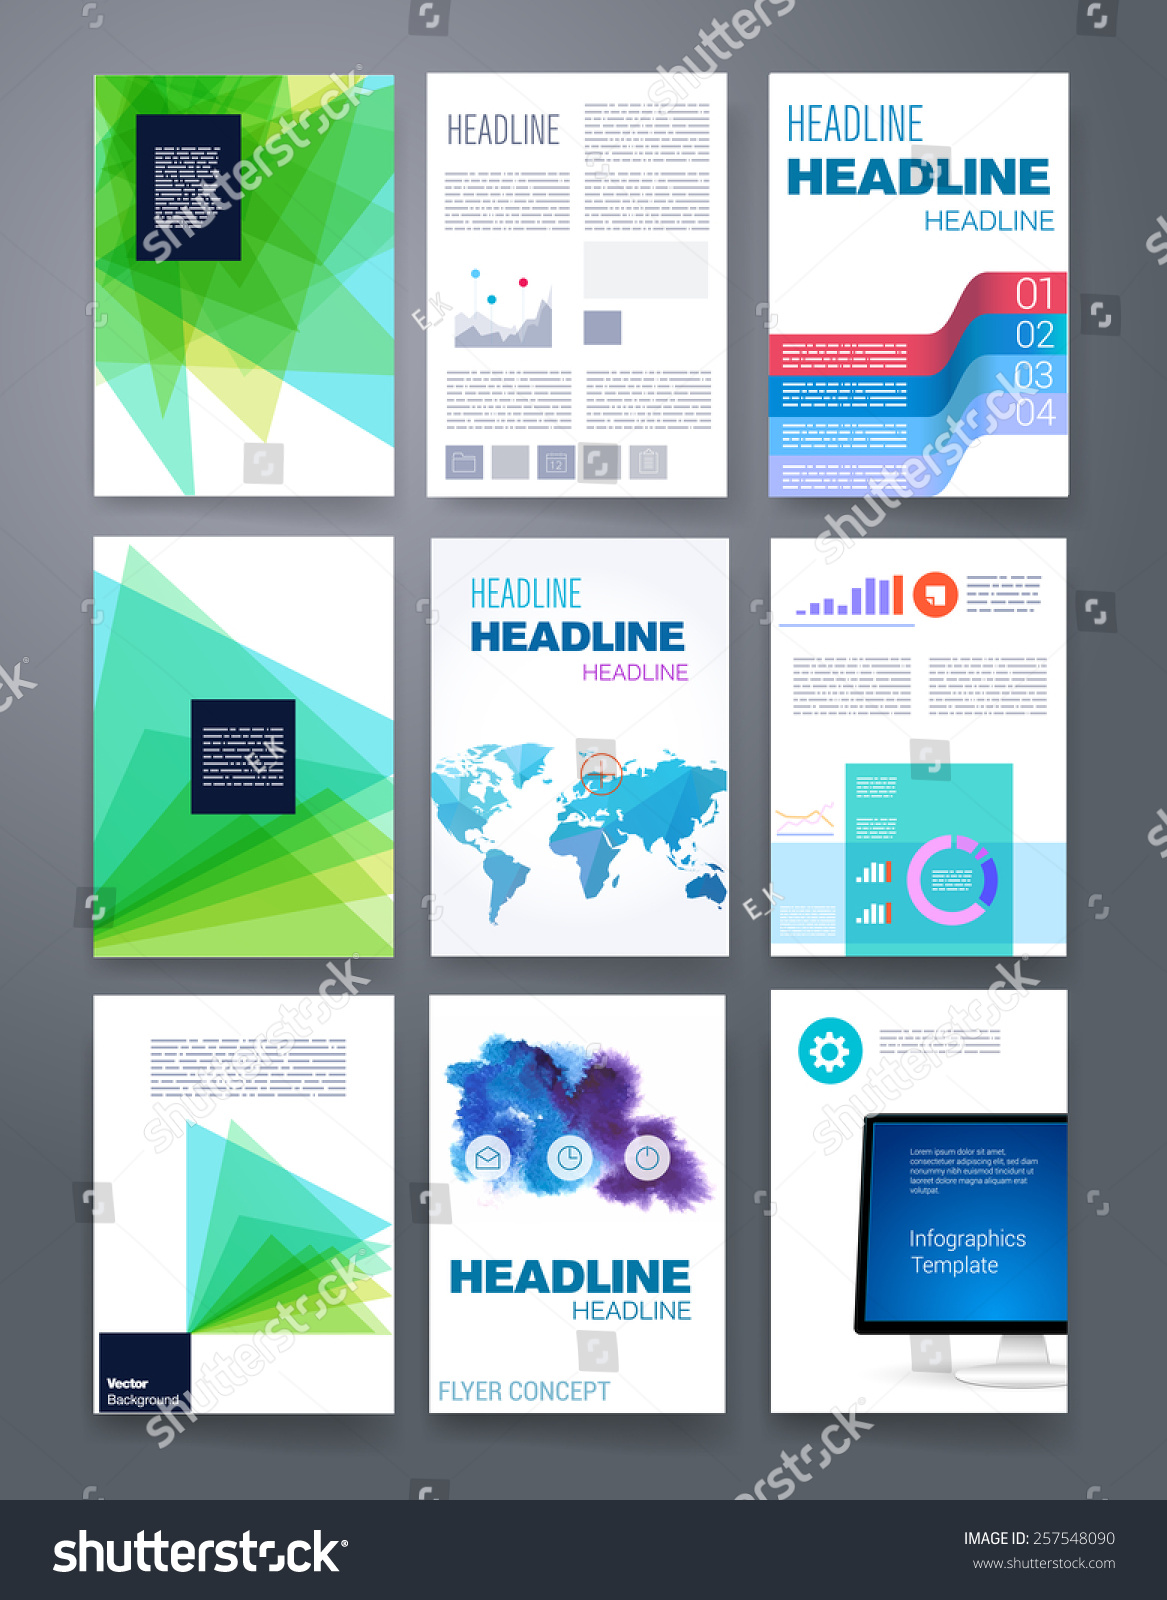 Vector Flyer, Brochure, Magazine Cover Template Can Use For Print And  Marketing